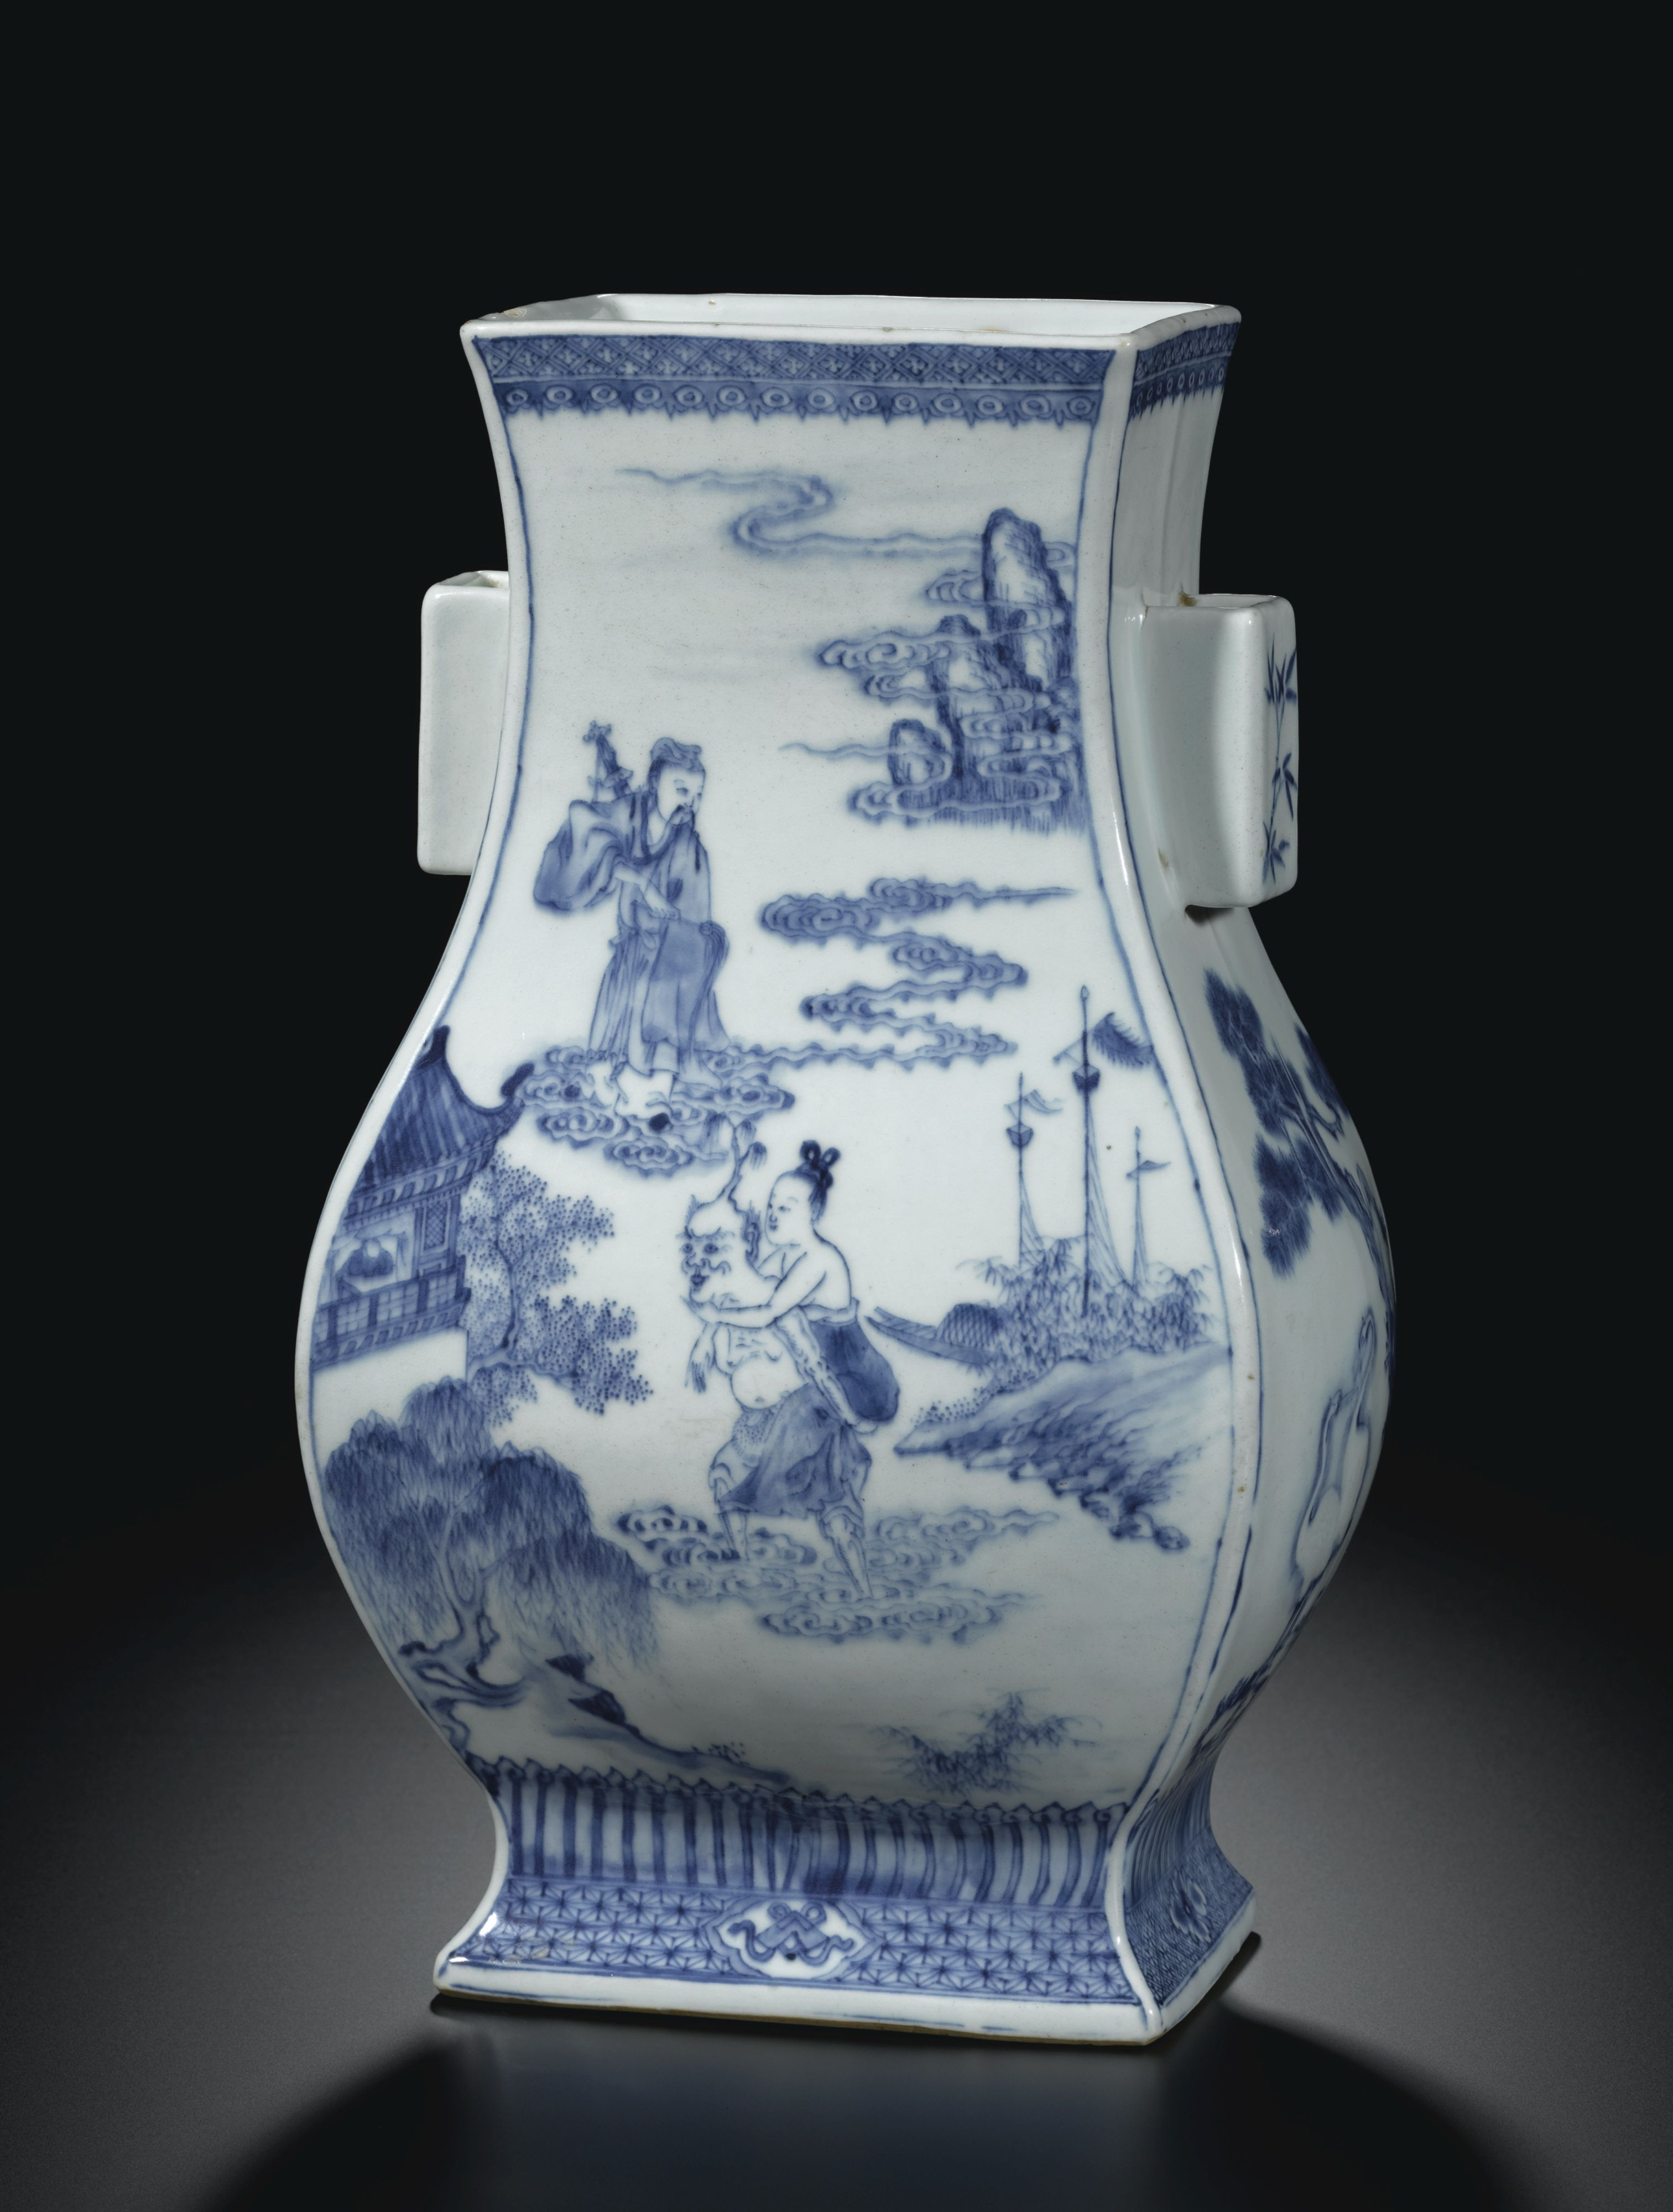 qing dynasty vase of vase sothebys i property from a private collection a blue and for vase sothebys i property from a private collection a blue and white immortals handled vase fanghu qing dynasty 18th century estimate 300000